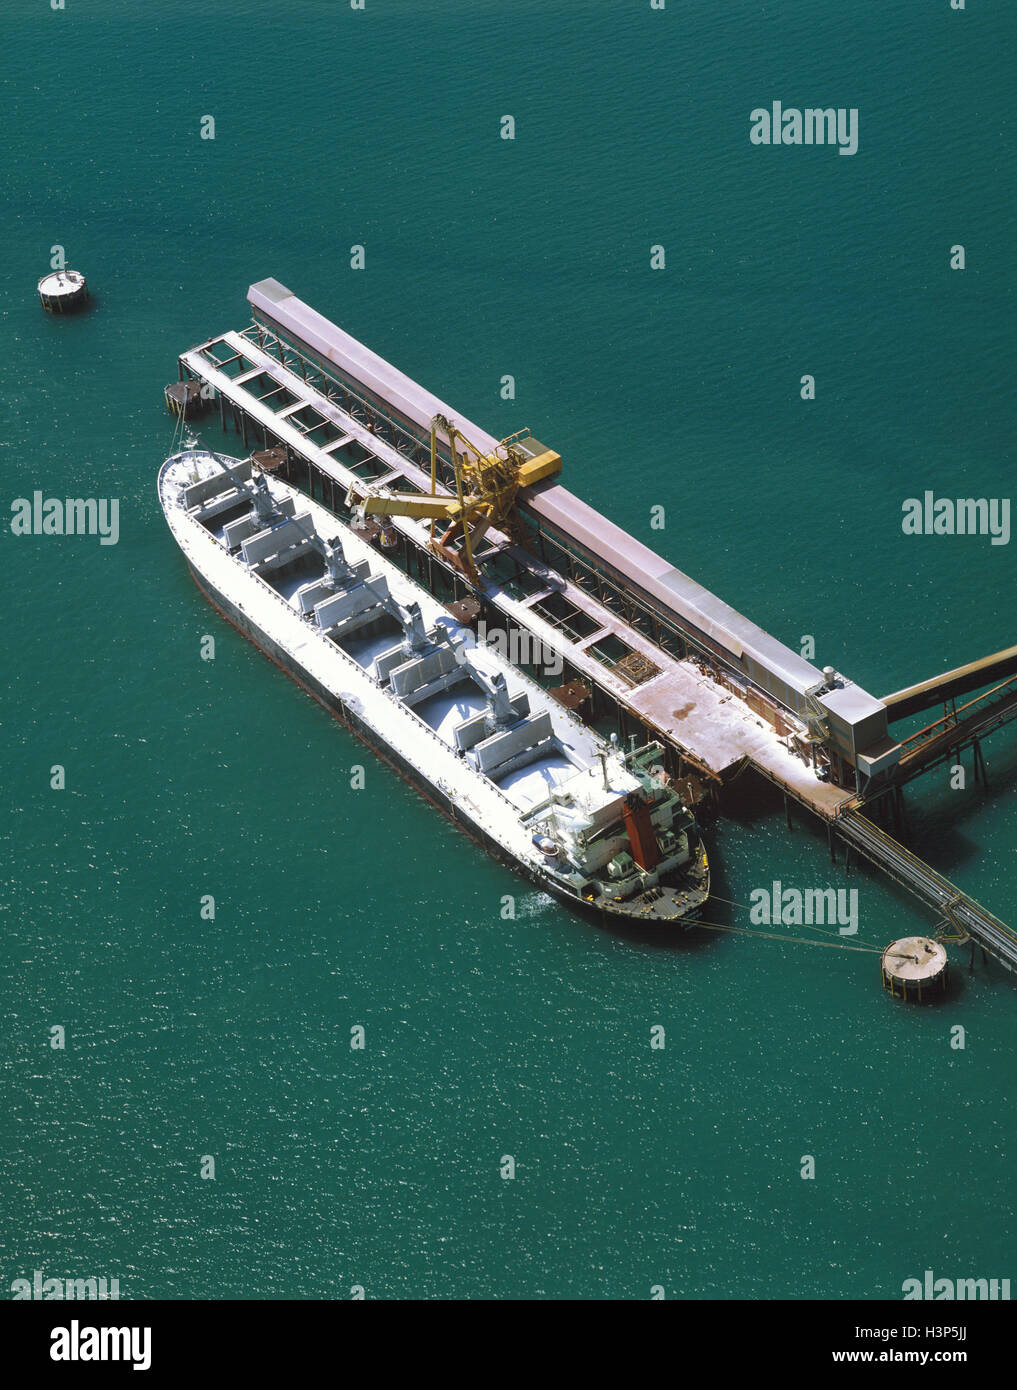 Aluminium carrier ship - Stock Image